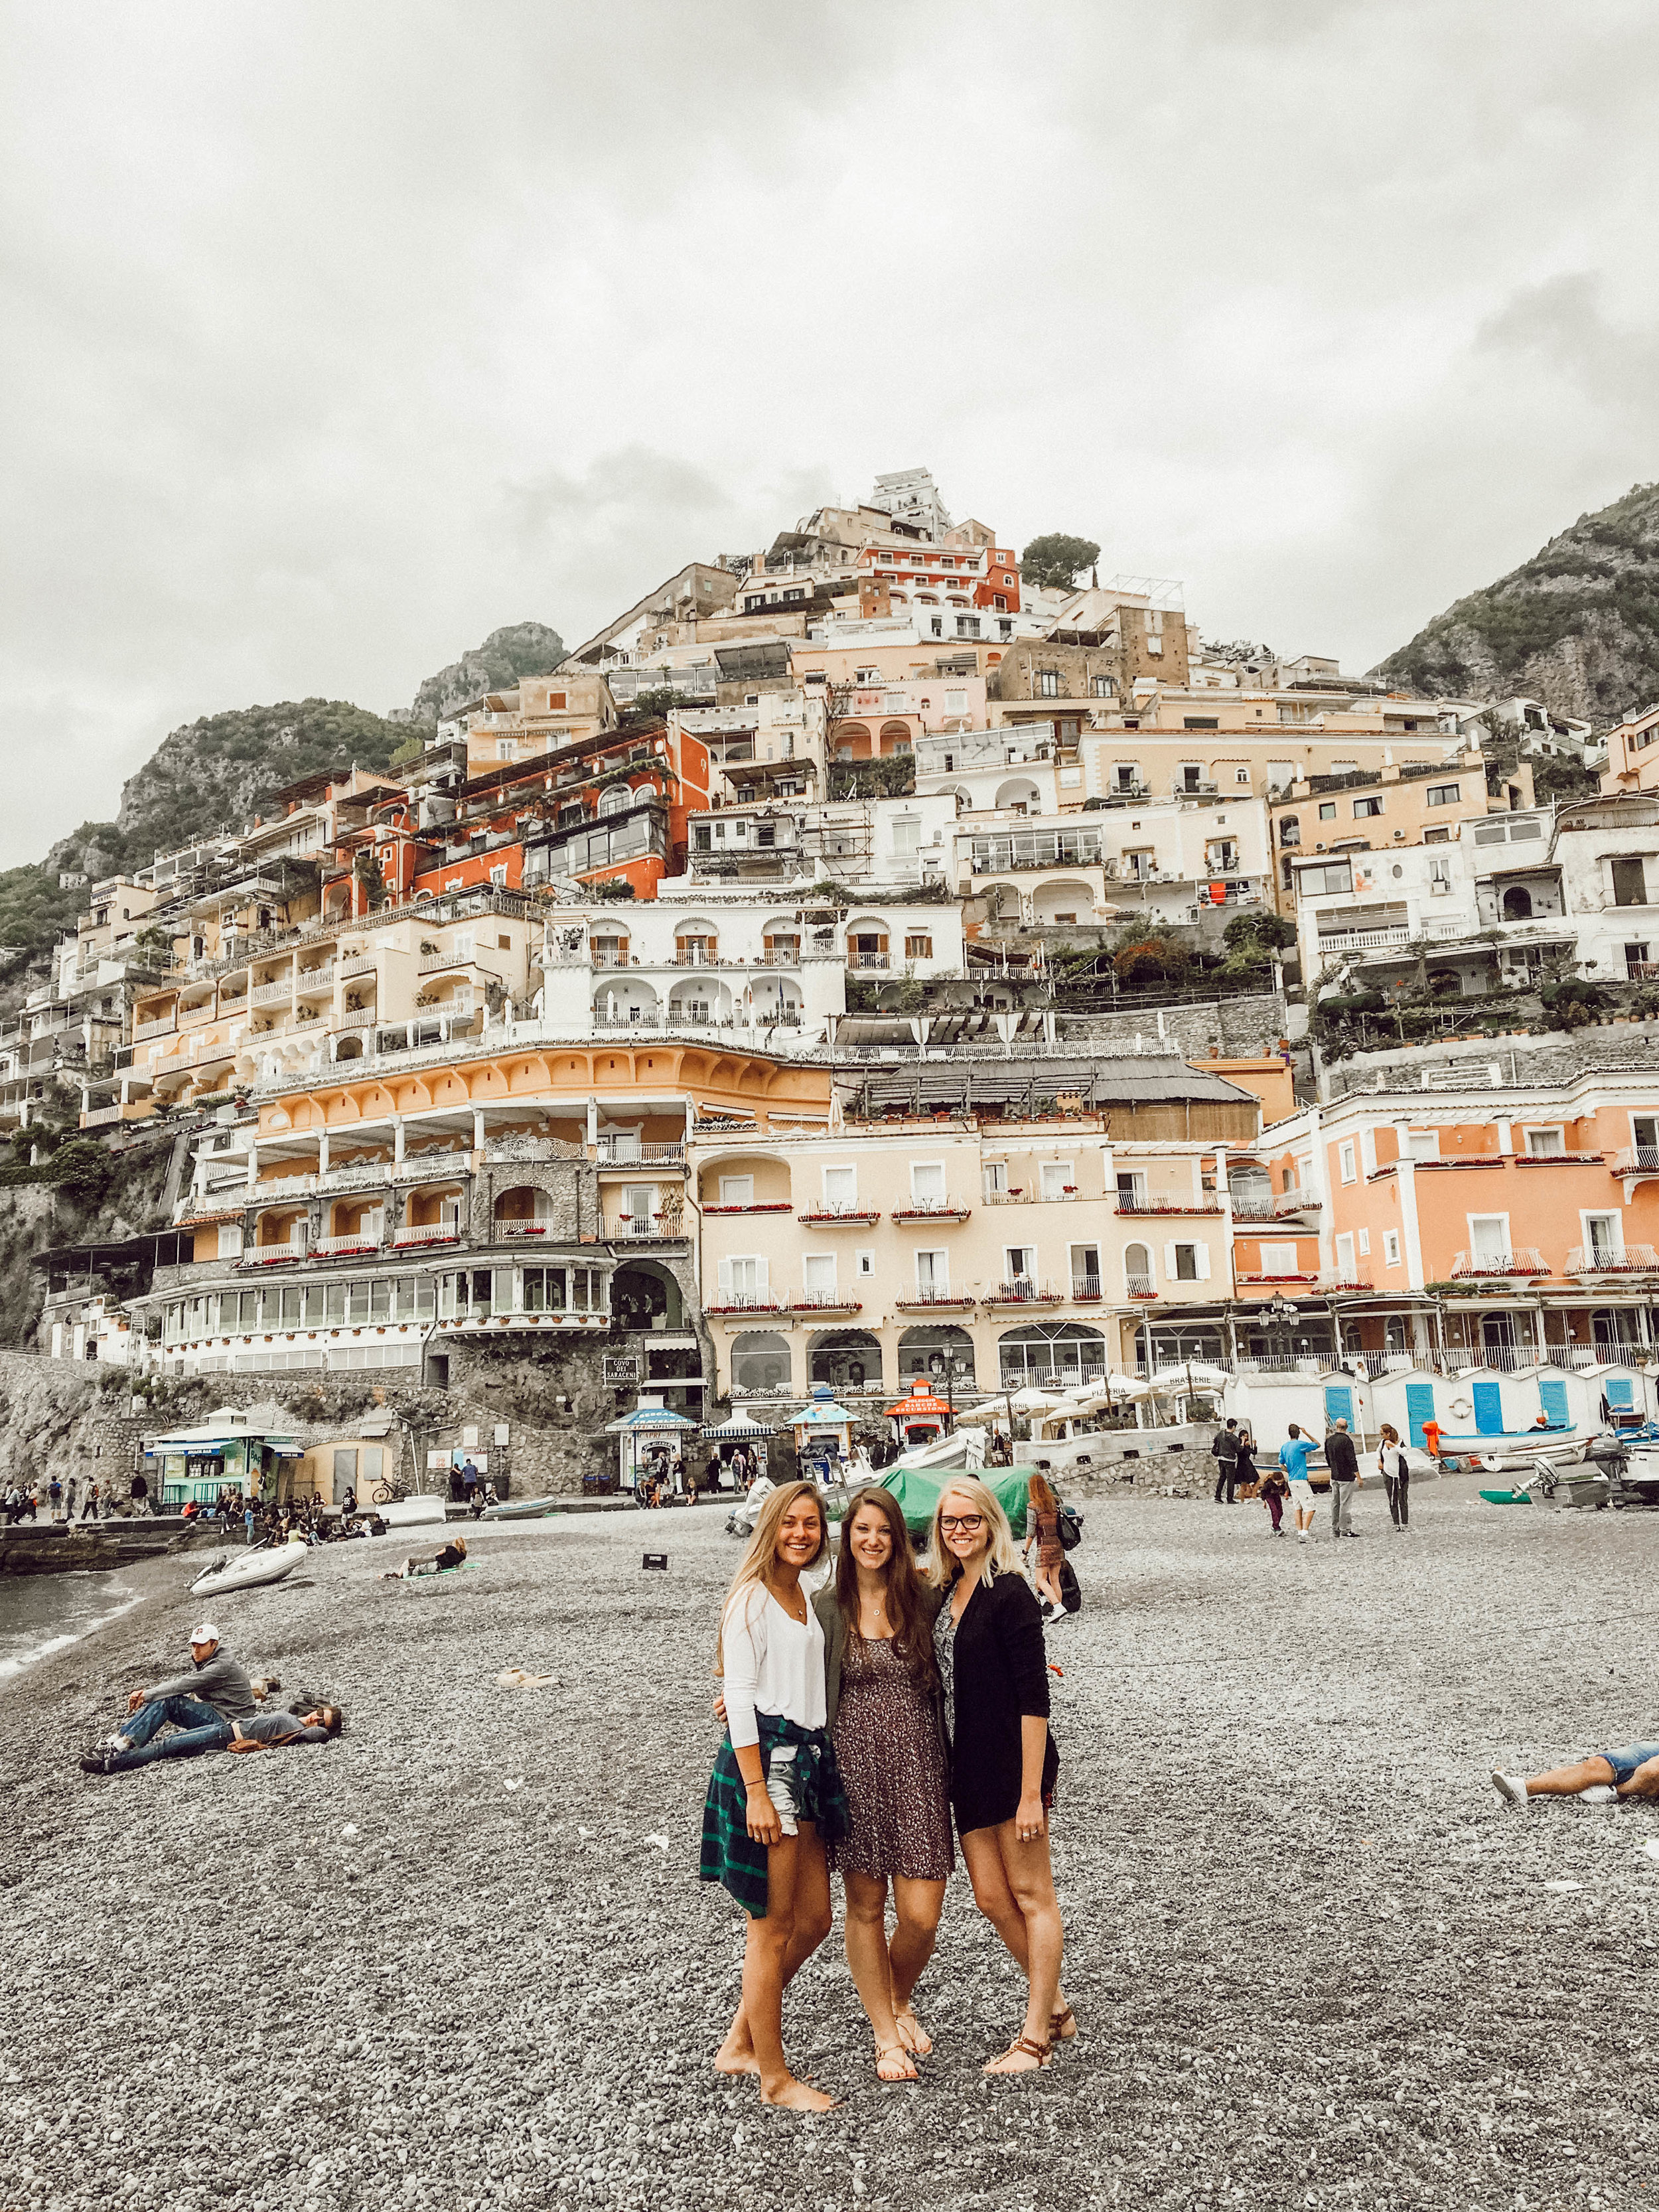 amalfi coast travel guide - Ahhh one of the most beautiful parts of Italy!! I'm sharing all my tips on where get the best limoncello, how to take a chairlift to the top and the top secret areas.